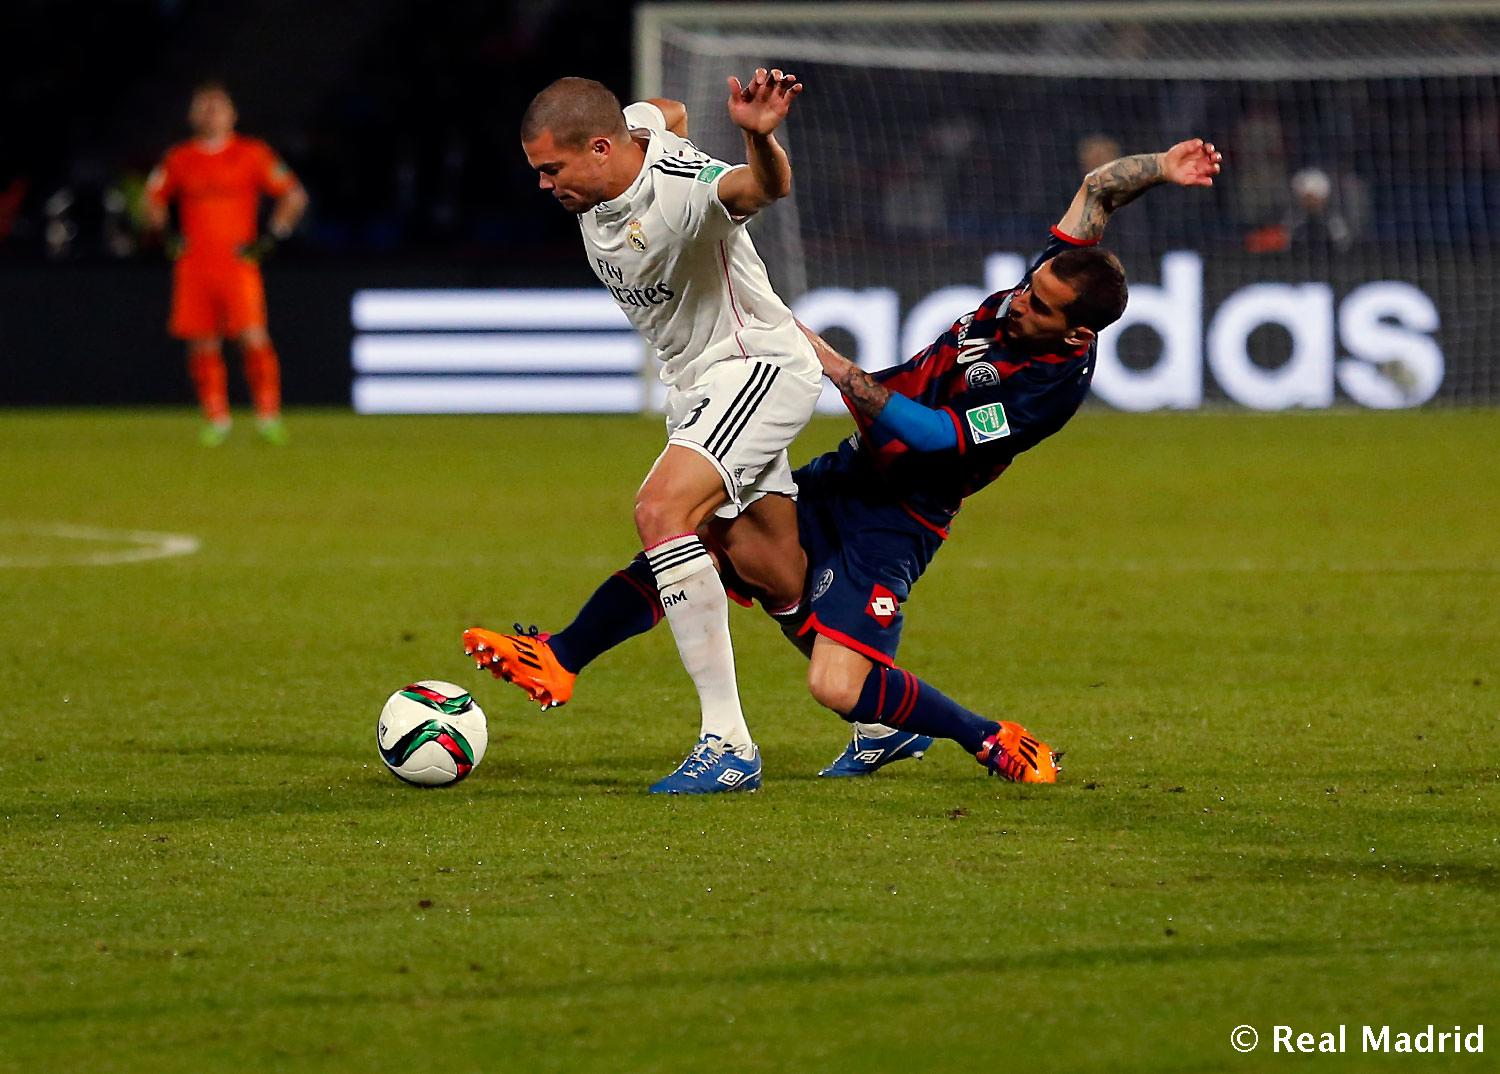 Real Madrid - Real Madrid - San Lorenzo - 20-12-2014